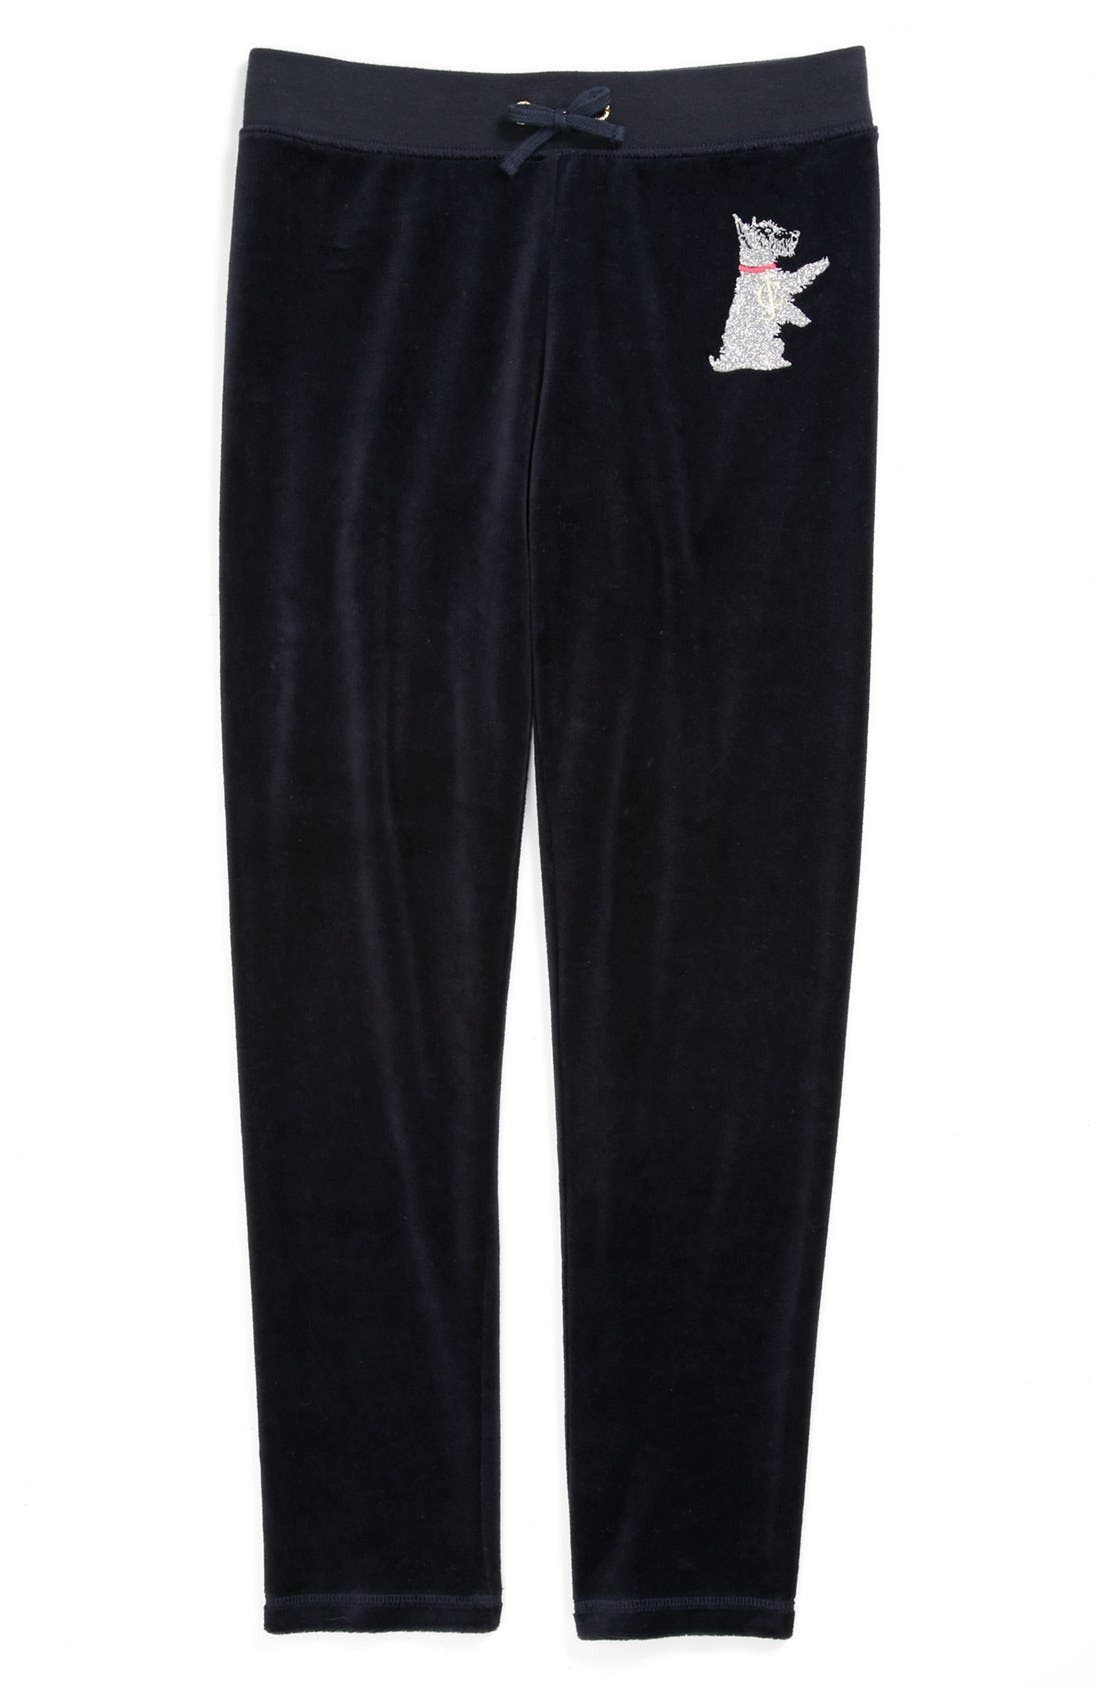 Main Image - Juicy Couture 'Glitter Scottie' Velour Pants (Little Girls & Big Girls)